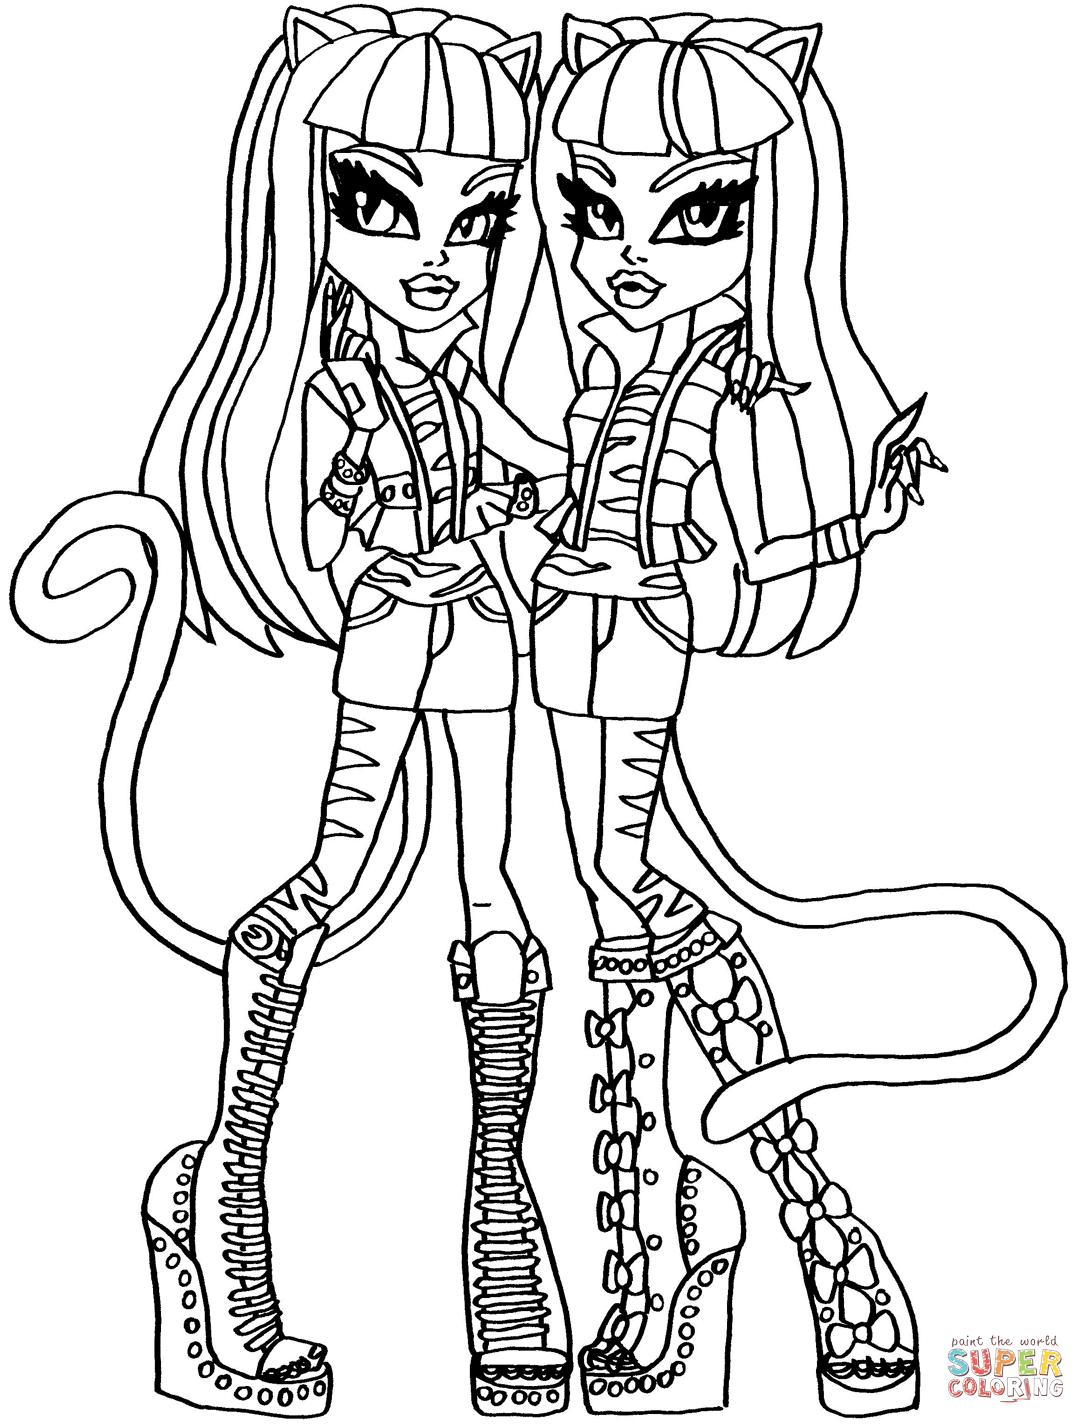 Exquisite Monster High Printables Coloring Pages Free Gallery Of Monster High Baby Coloring Pages 012 to Coloring Pages Collection